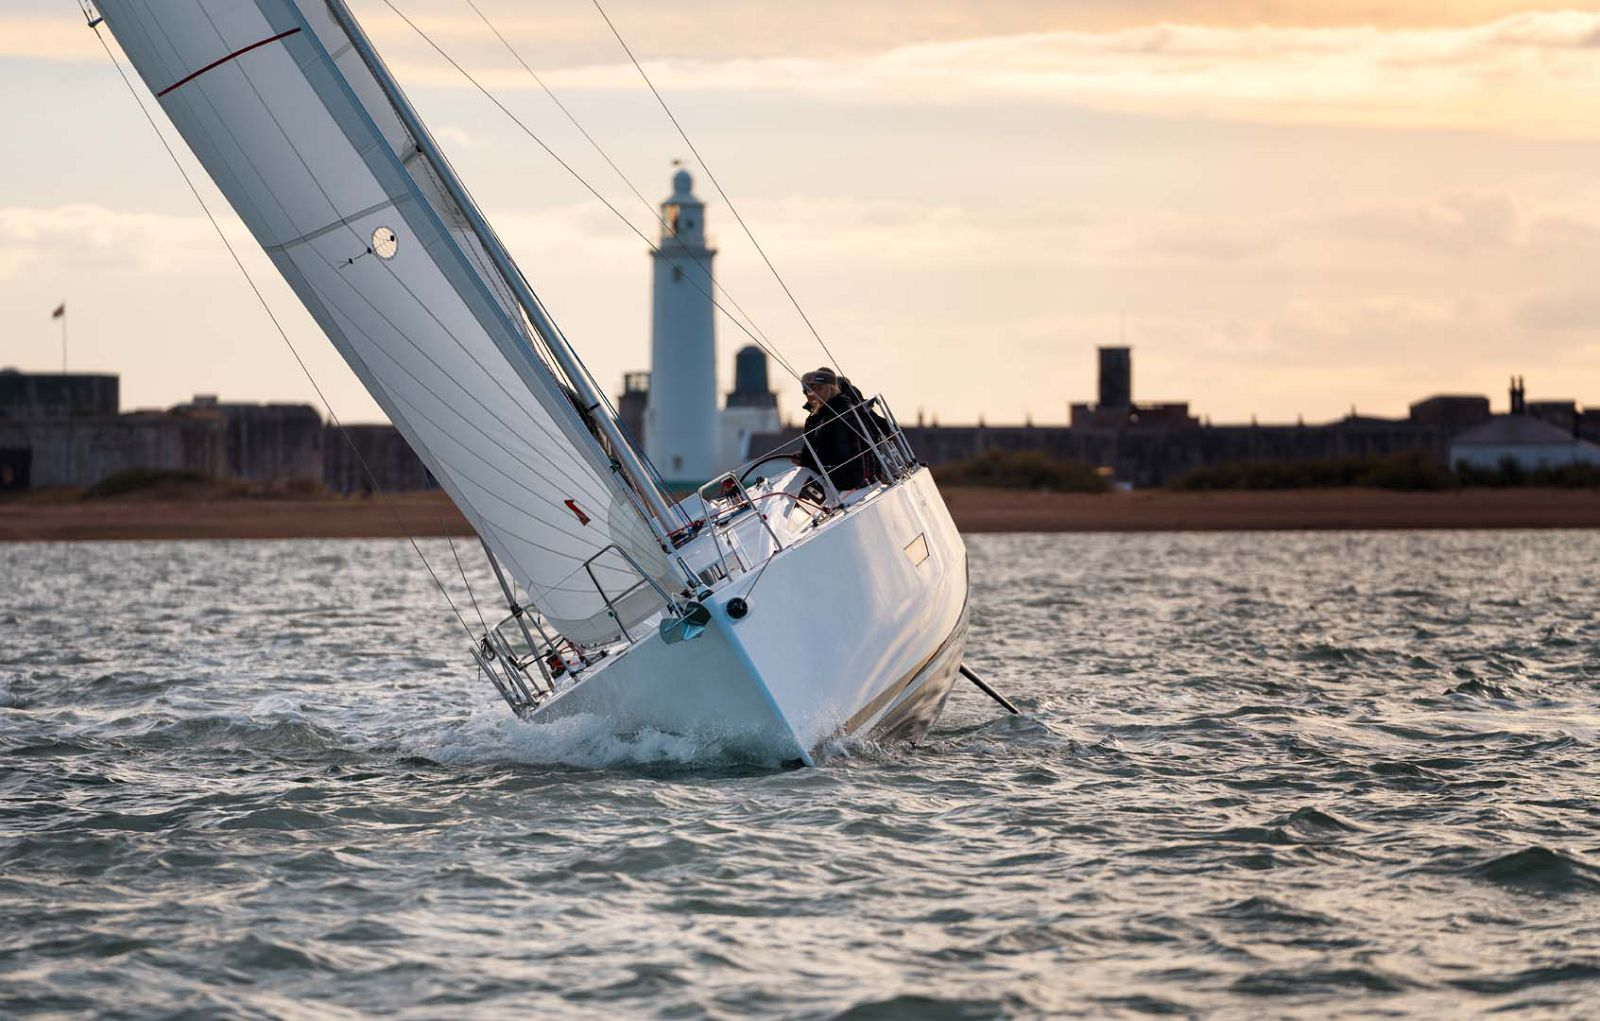 Elan-Yachts-E4-Sailboat-Running